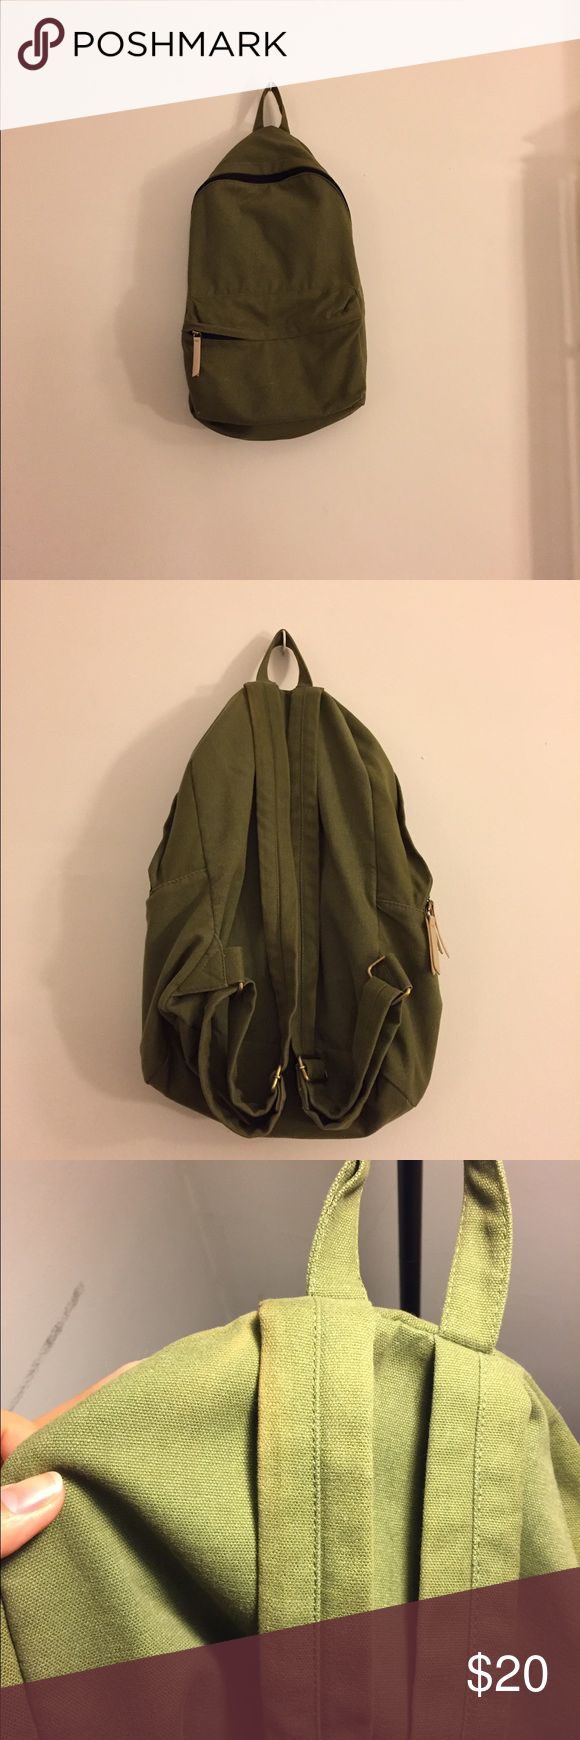 H&M Green Backpack H&M Green Backpack. Minimal use. Good condition. Slight discoloration on upper part of right hand strap (see pic 3). It's super roomy and fits quite a bit. No trades please. H&M Bags Backpacks